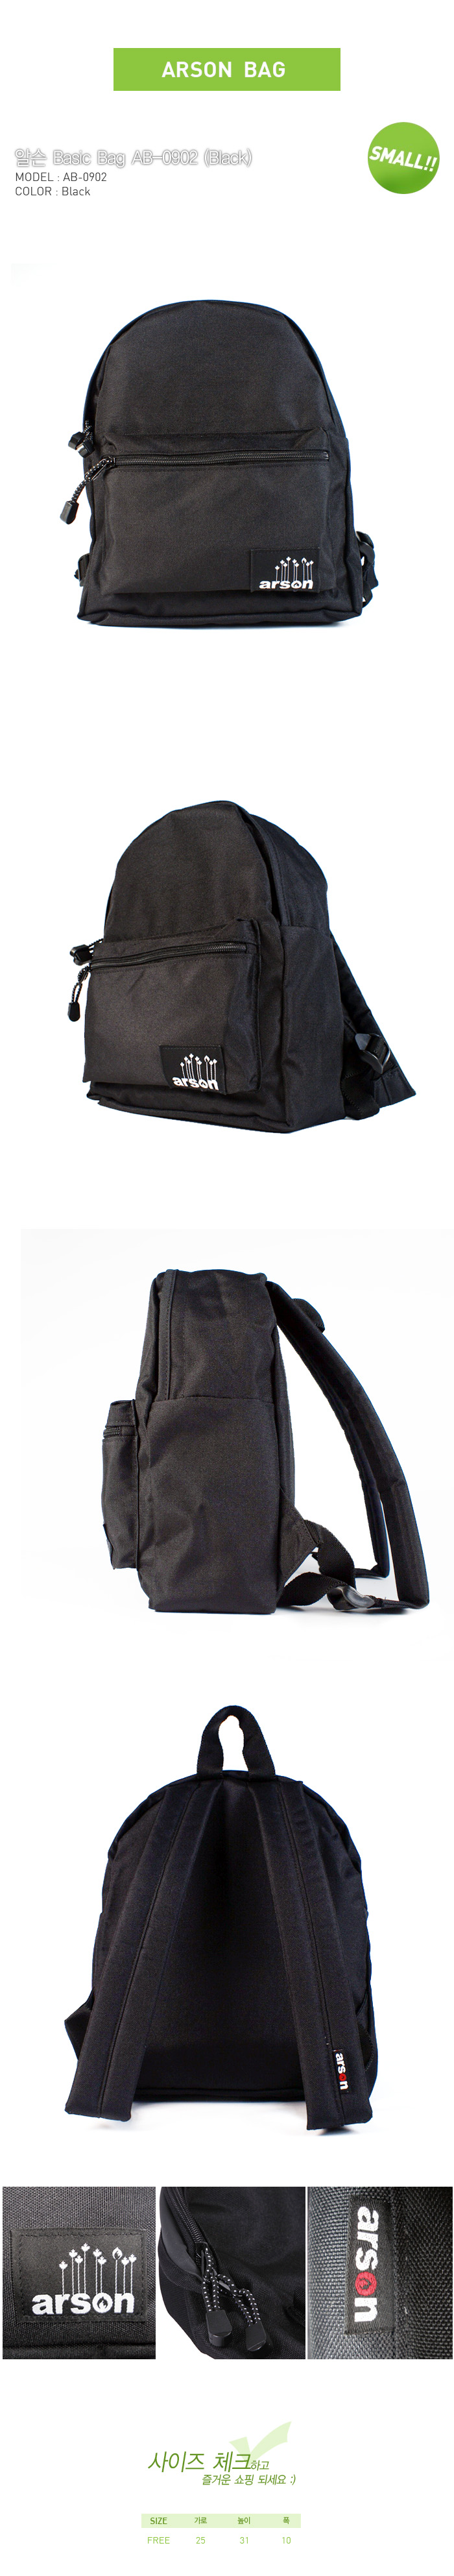 [ ARSON ] AB-0902 (Black)/Backpack School Bag